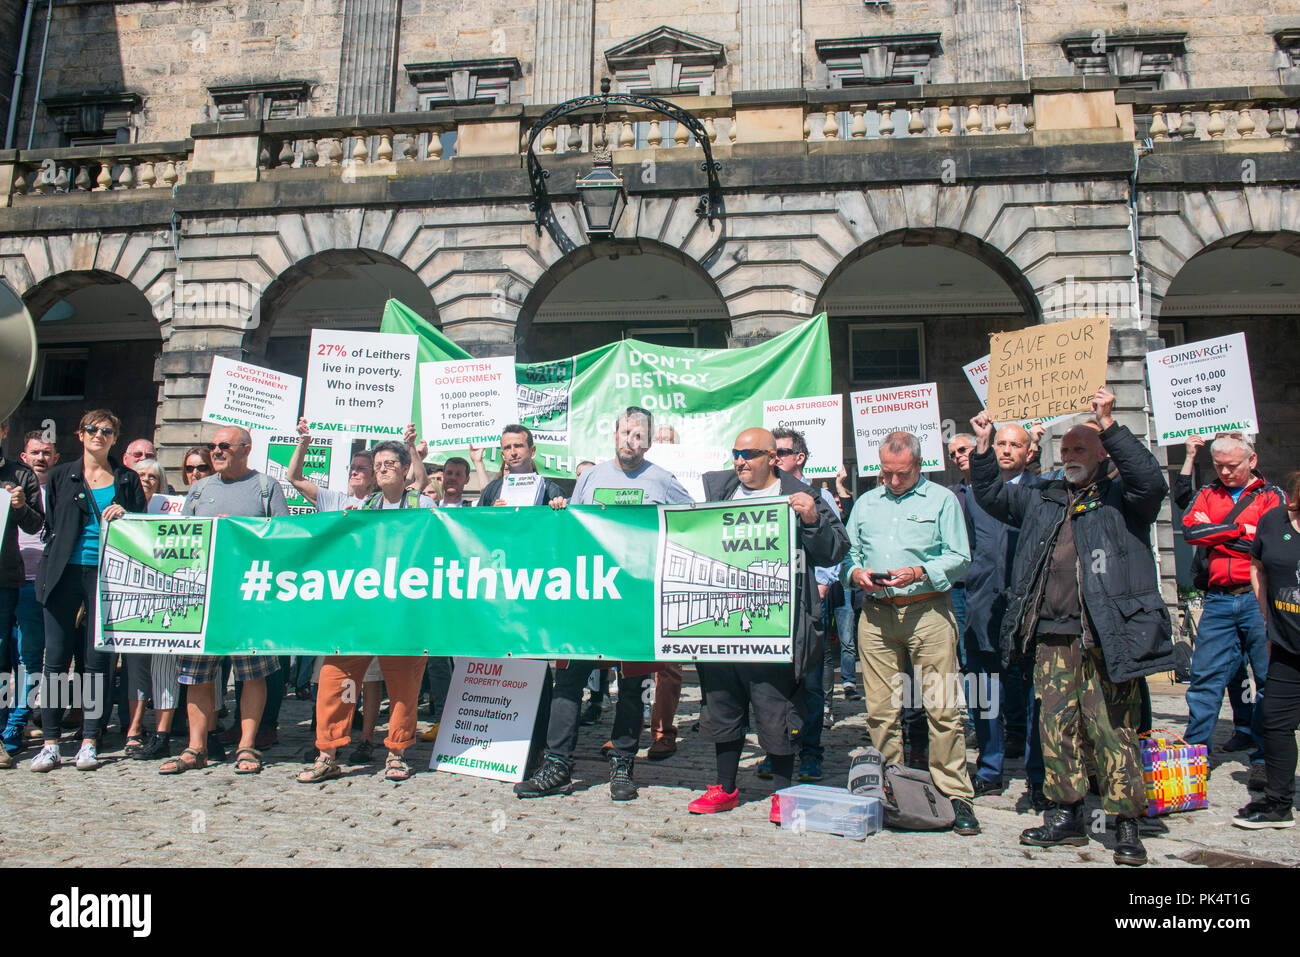 Save Leith Walk Protest, Petition handover at Edinburgh City Chambers, Drum Property - Stock Image